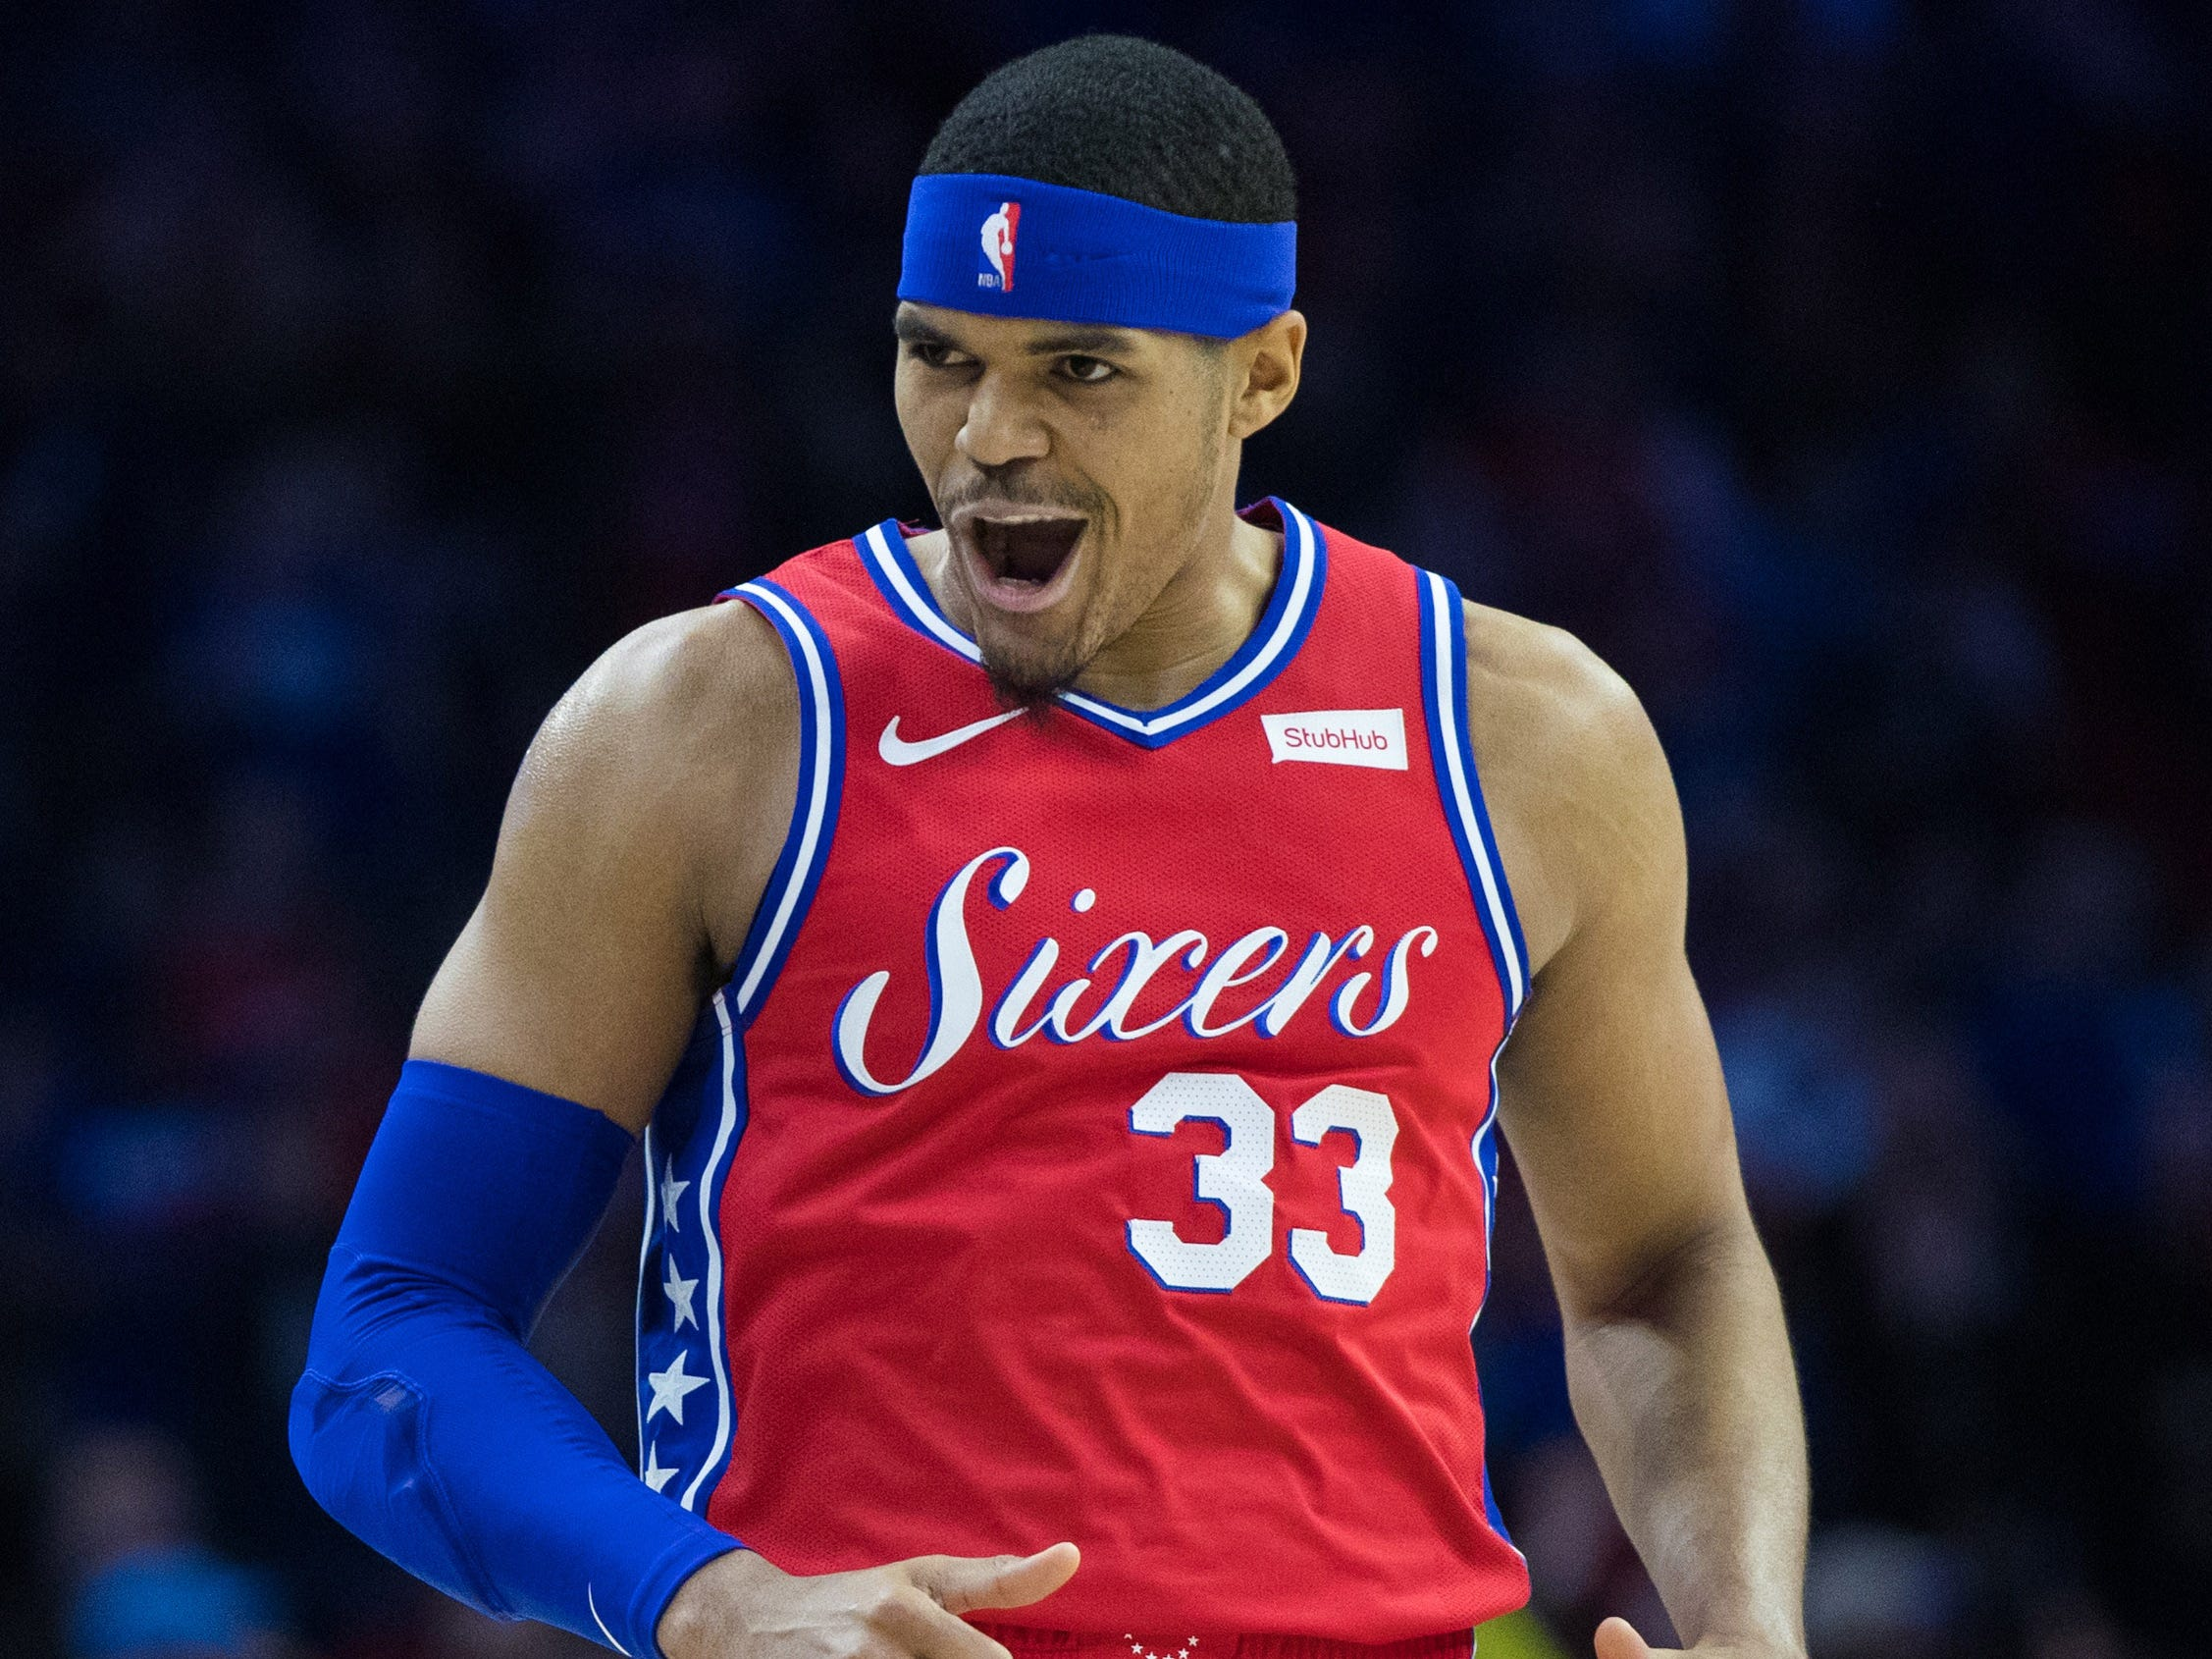 Feb. 8: Philadelphia 76ers forward Tobias Harris celebrates after a score against the Denver Nuggets during the first quarter at Wells Fargo Center.